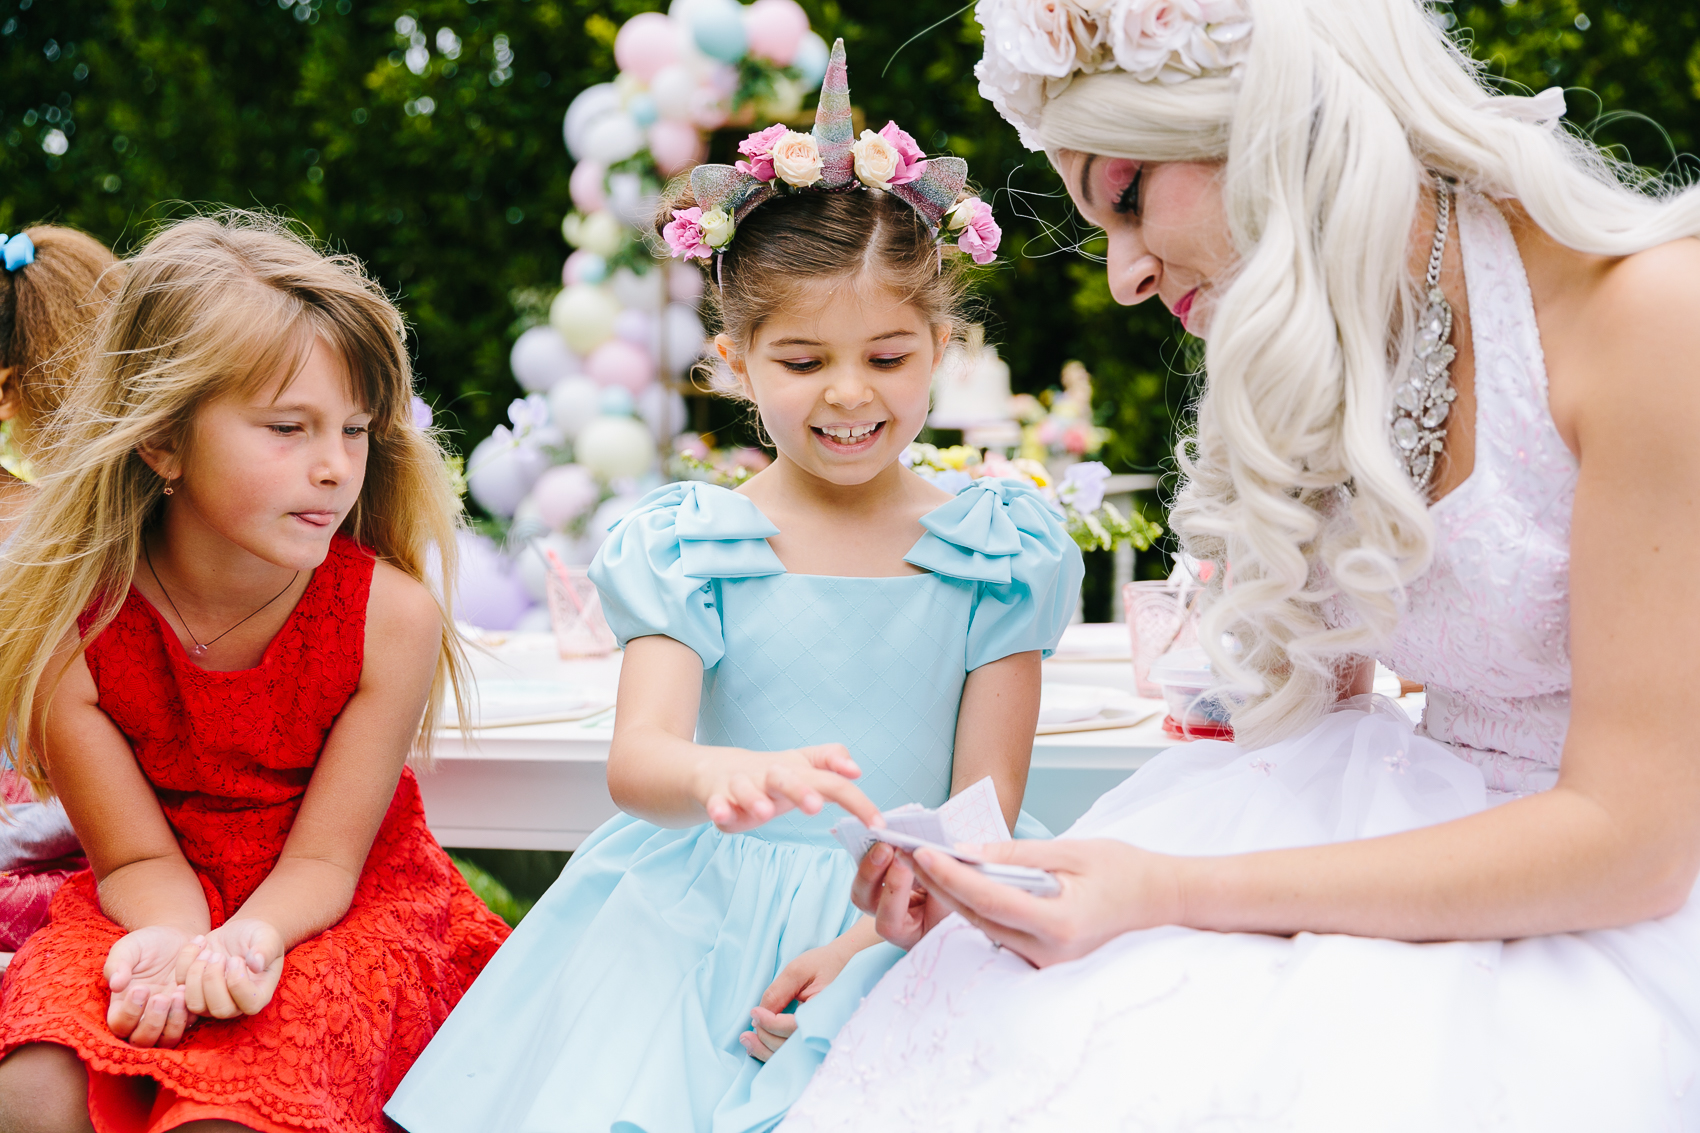 Los_Angeles_Family_Photographer_Luxury_Childrens_Party_Beverly_Hills_Unicorn_Birthday_Party-0835.jpg